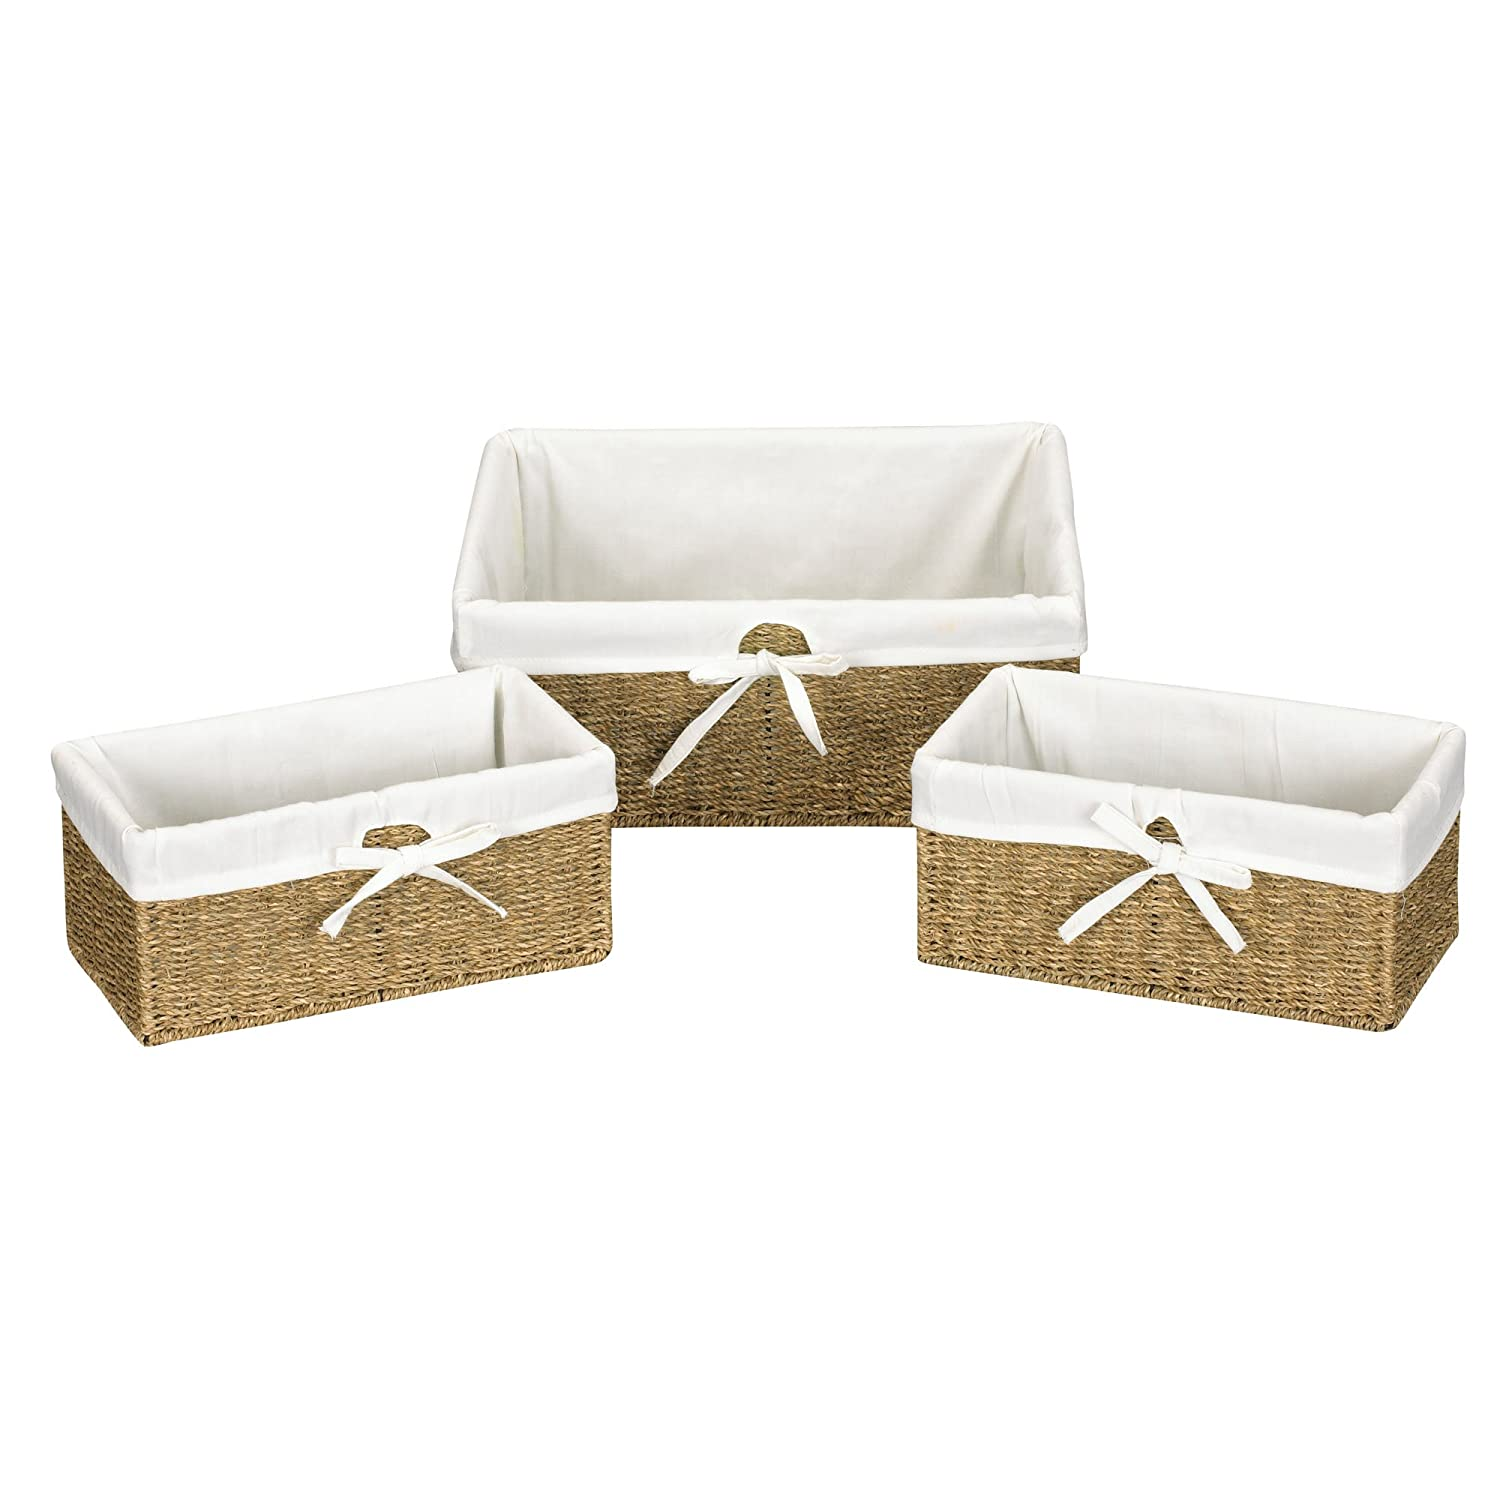 Amazon.com: Household Essentials ML-5611 Set of Three Woven Wicker ...